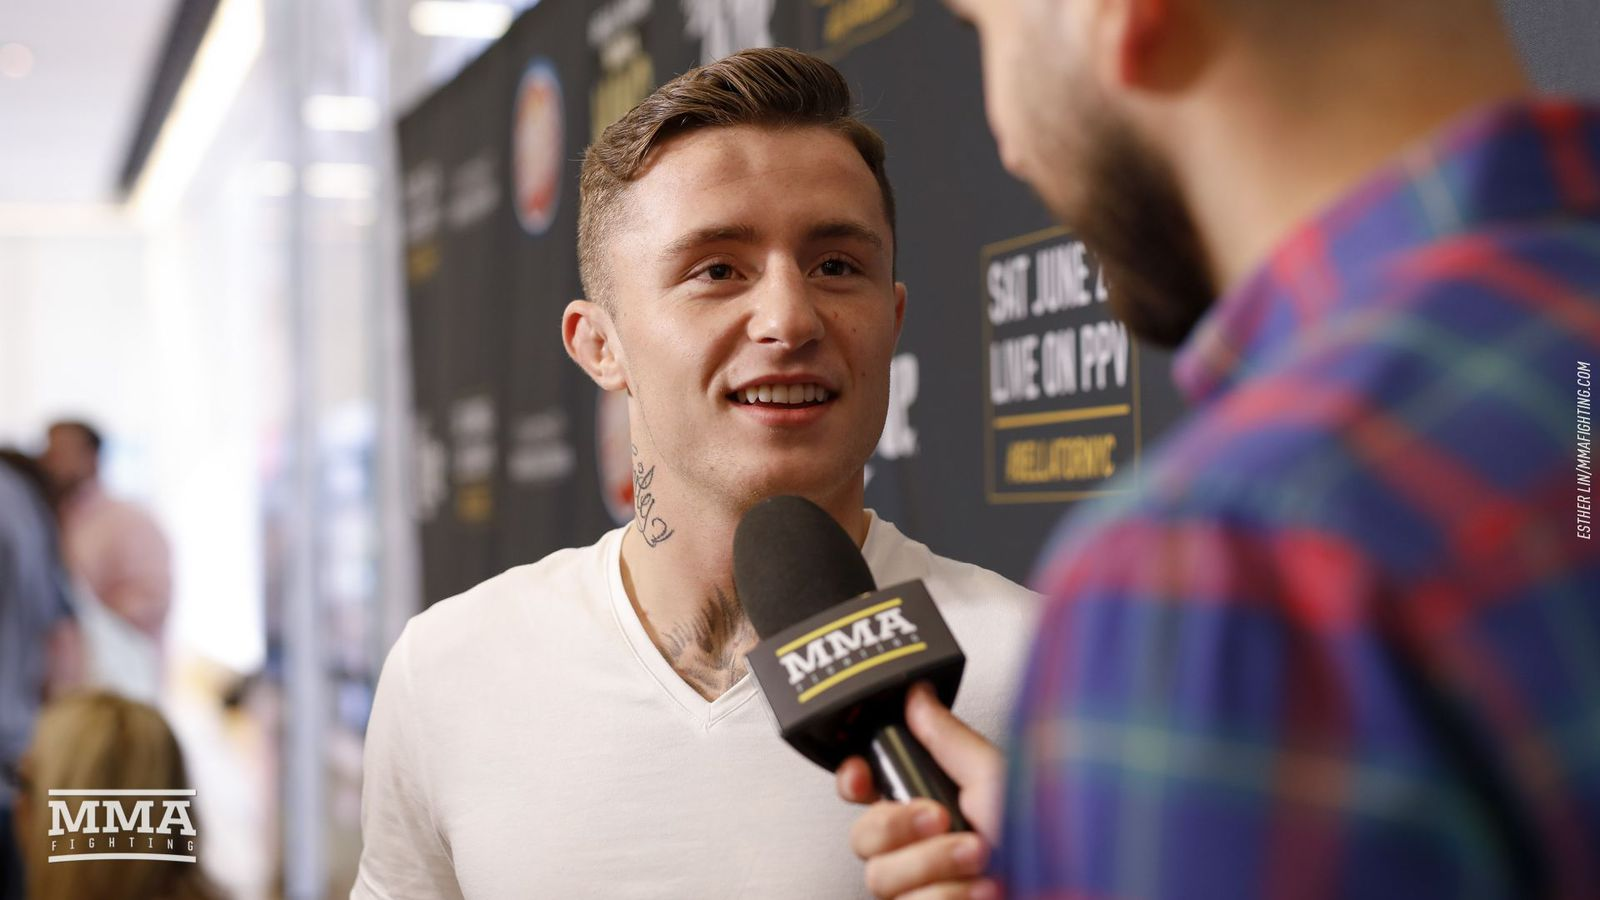 James Gallagher accuses A.J. McKee of starting 'fake feud'